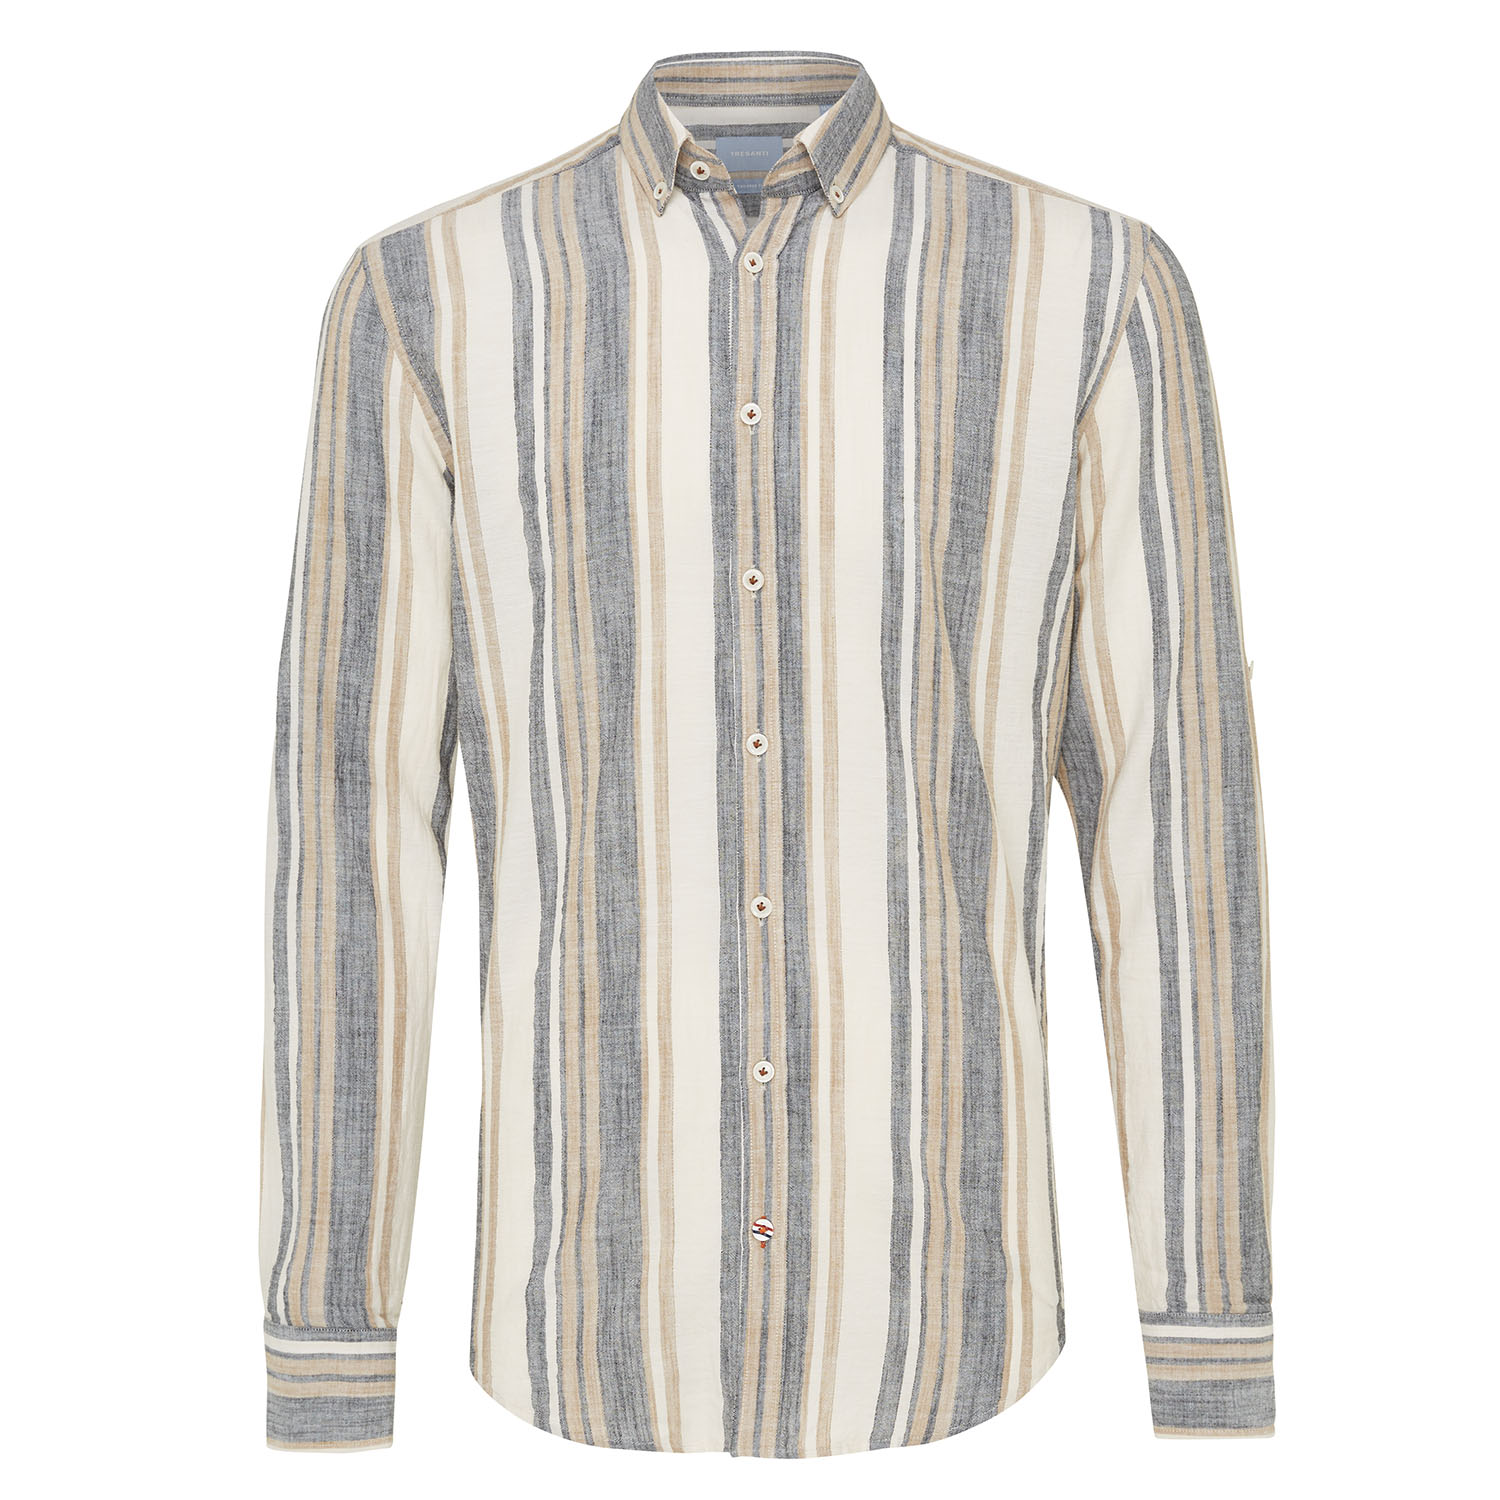 Mickey | Shirt multi stripe beige/indigo